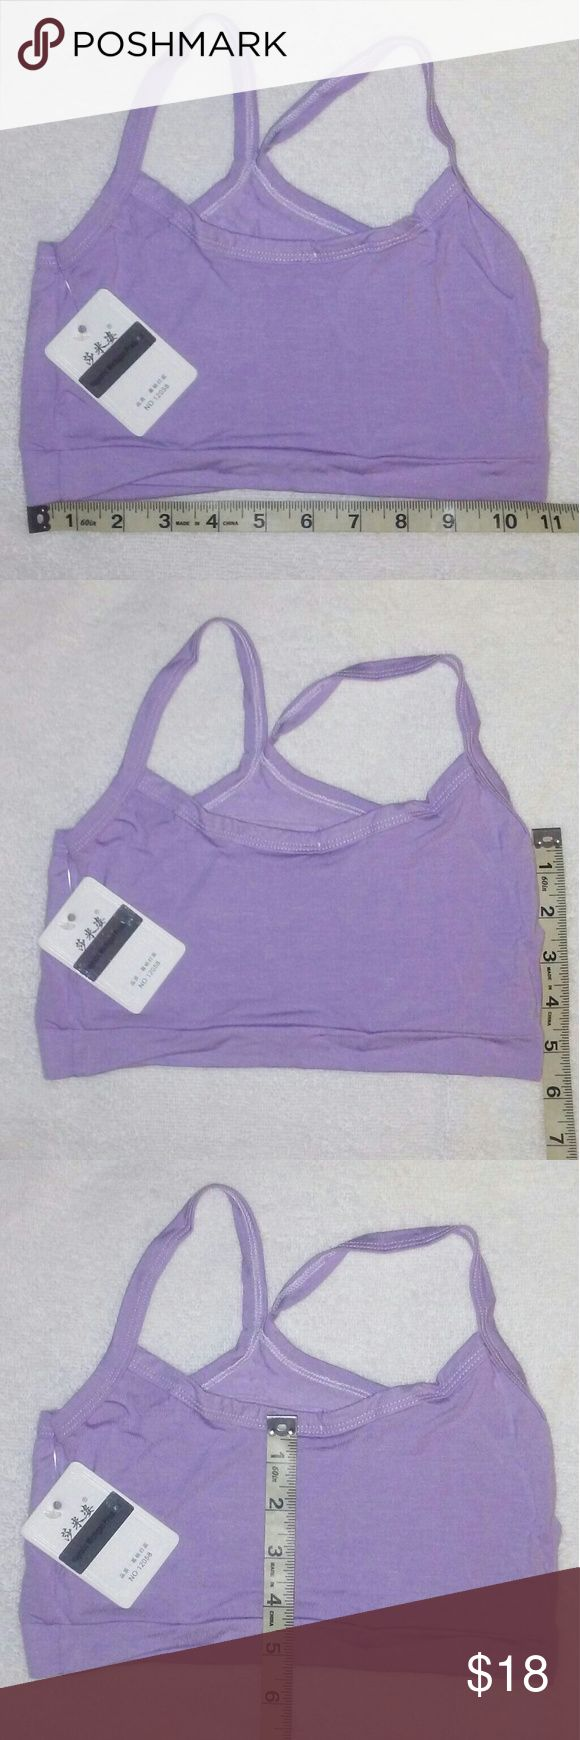 Women's Purple Sports Bra crop top cami Gym Yoga You are Viewing 1 Brand New Women's Sports Bra Purpl petite Solid crop top cami Cotton Gym Yoga Bra Wire Free one size. Lenght 28cm/11.02 inches Bust size 64-88cm /25.2 inches 34.65 inches, CHEST PADS are NOT INCLUDED. Super elastic, breathable & Comfortable, 80  % Cotton 20 % Spandex made in China. Majestic Michigan Products Intimates & Sleepwear Bras